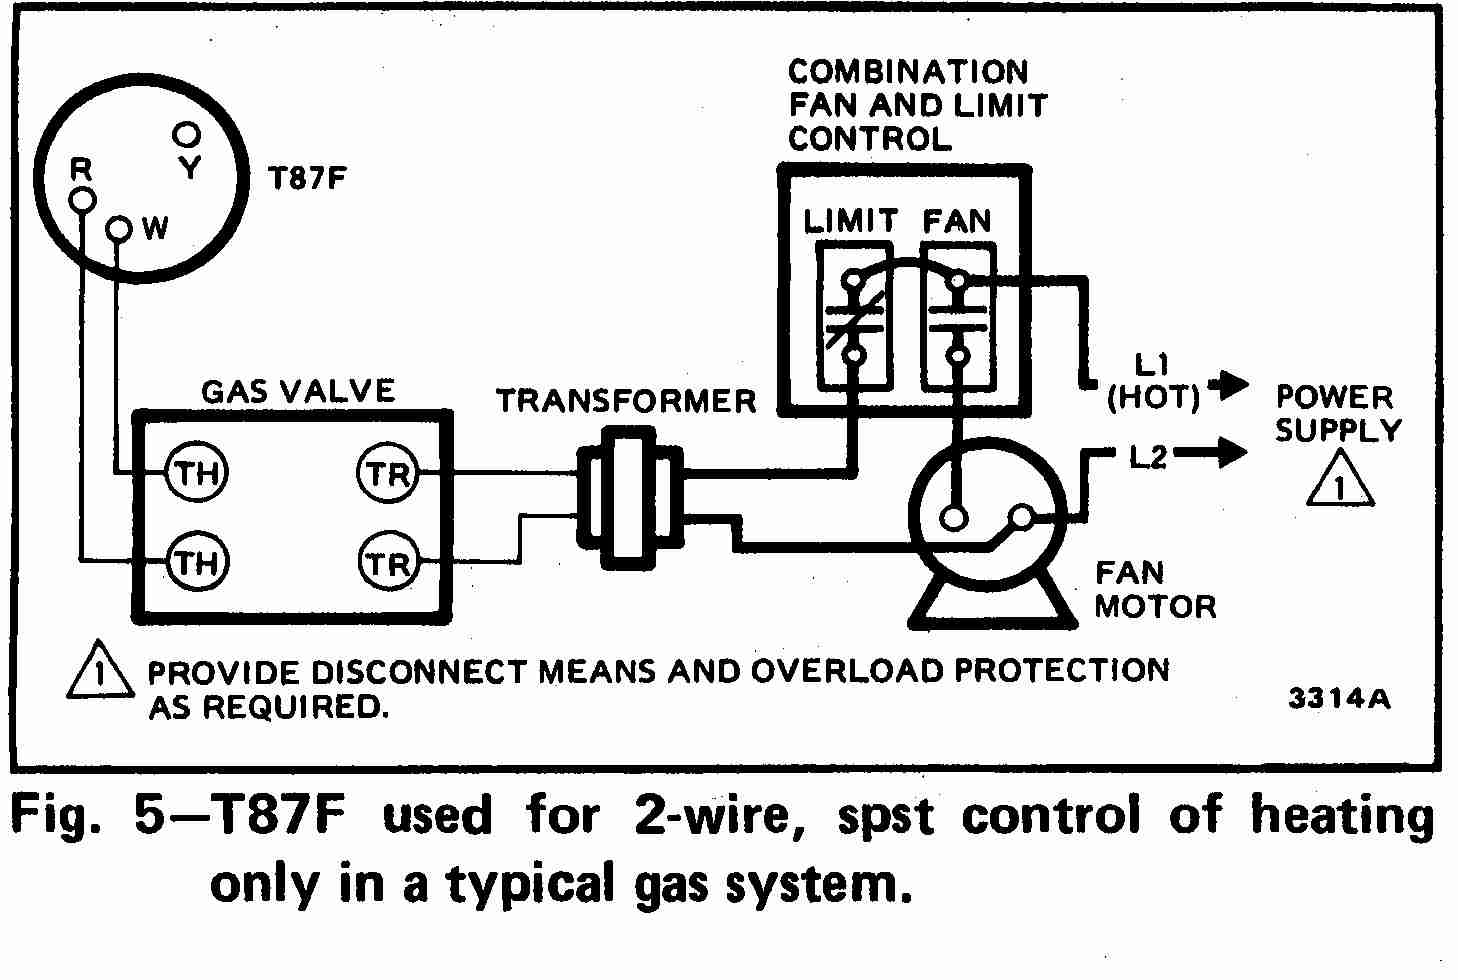 TT_T87F_0002_2Wg_DJF room thermostat wiring diagrams for hvac systems wall heater wiring diagram at edmiracle.co